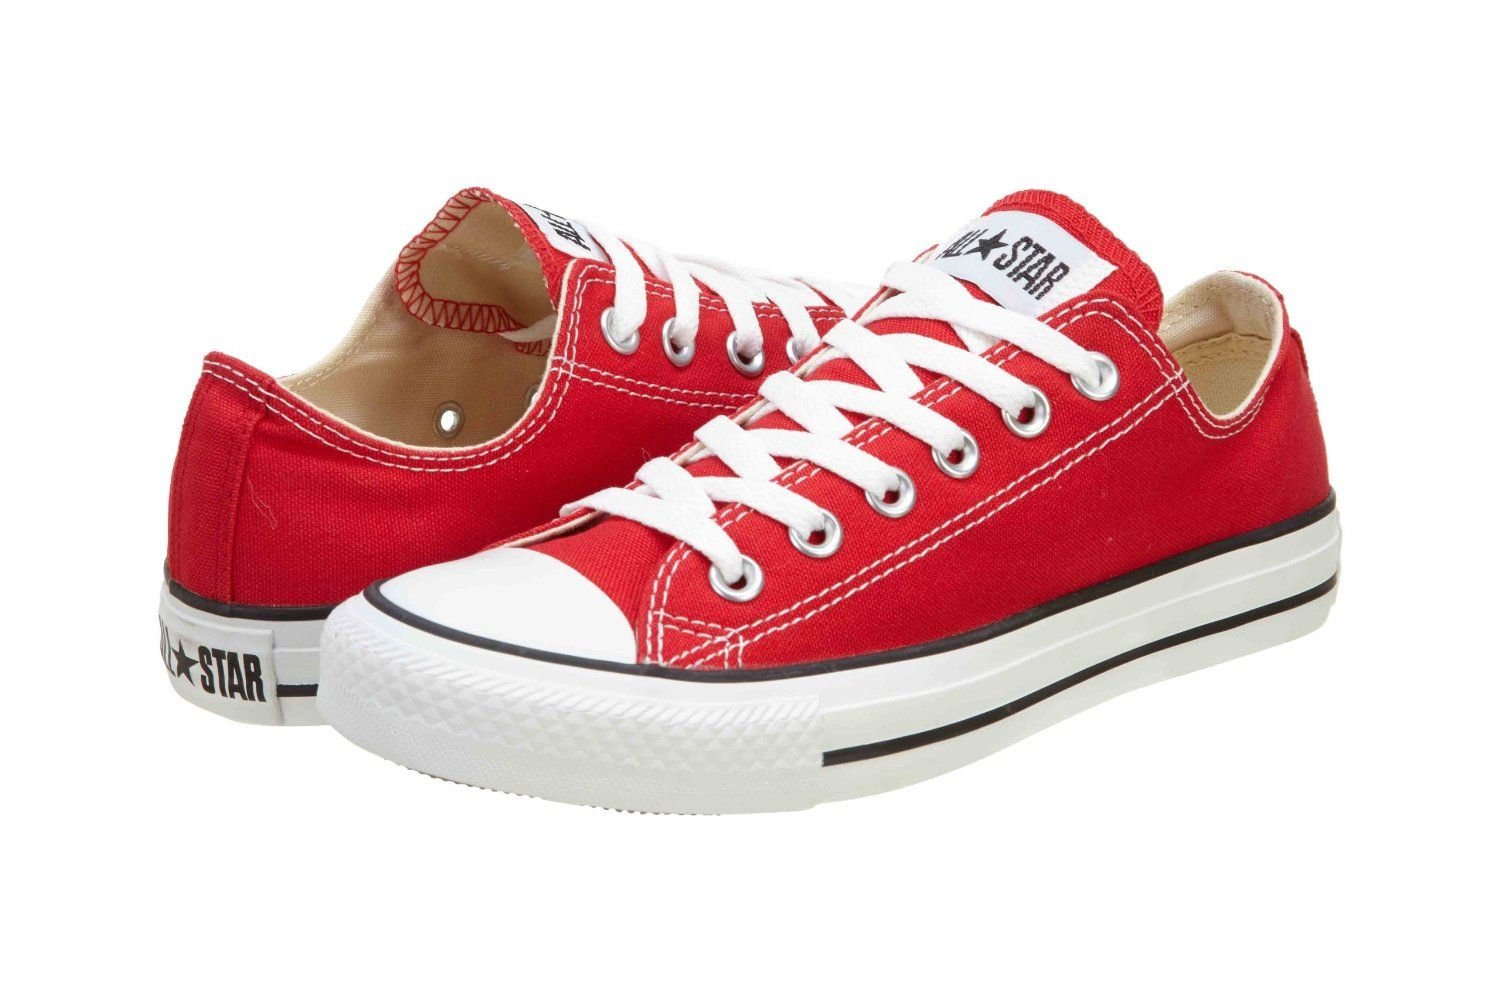 7430863e4ff422 Amazon.com  Converse Chuck Taylor All Star Shoes (M9696) Low Top in Red   Shoes